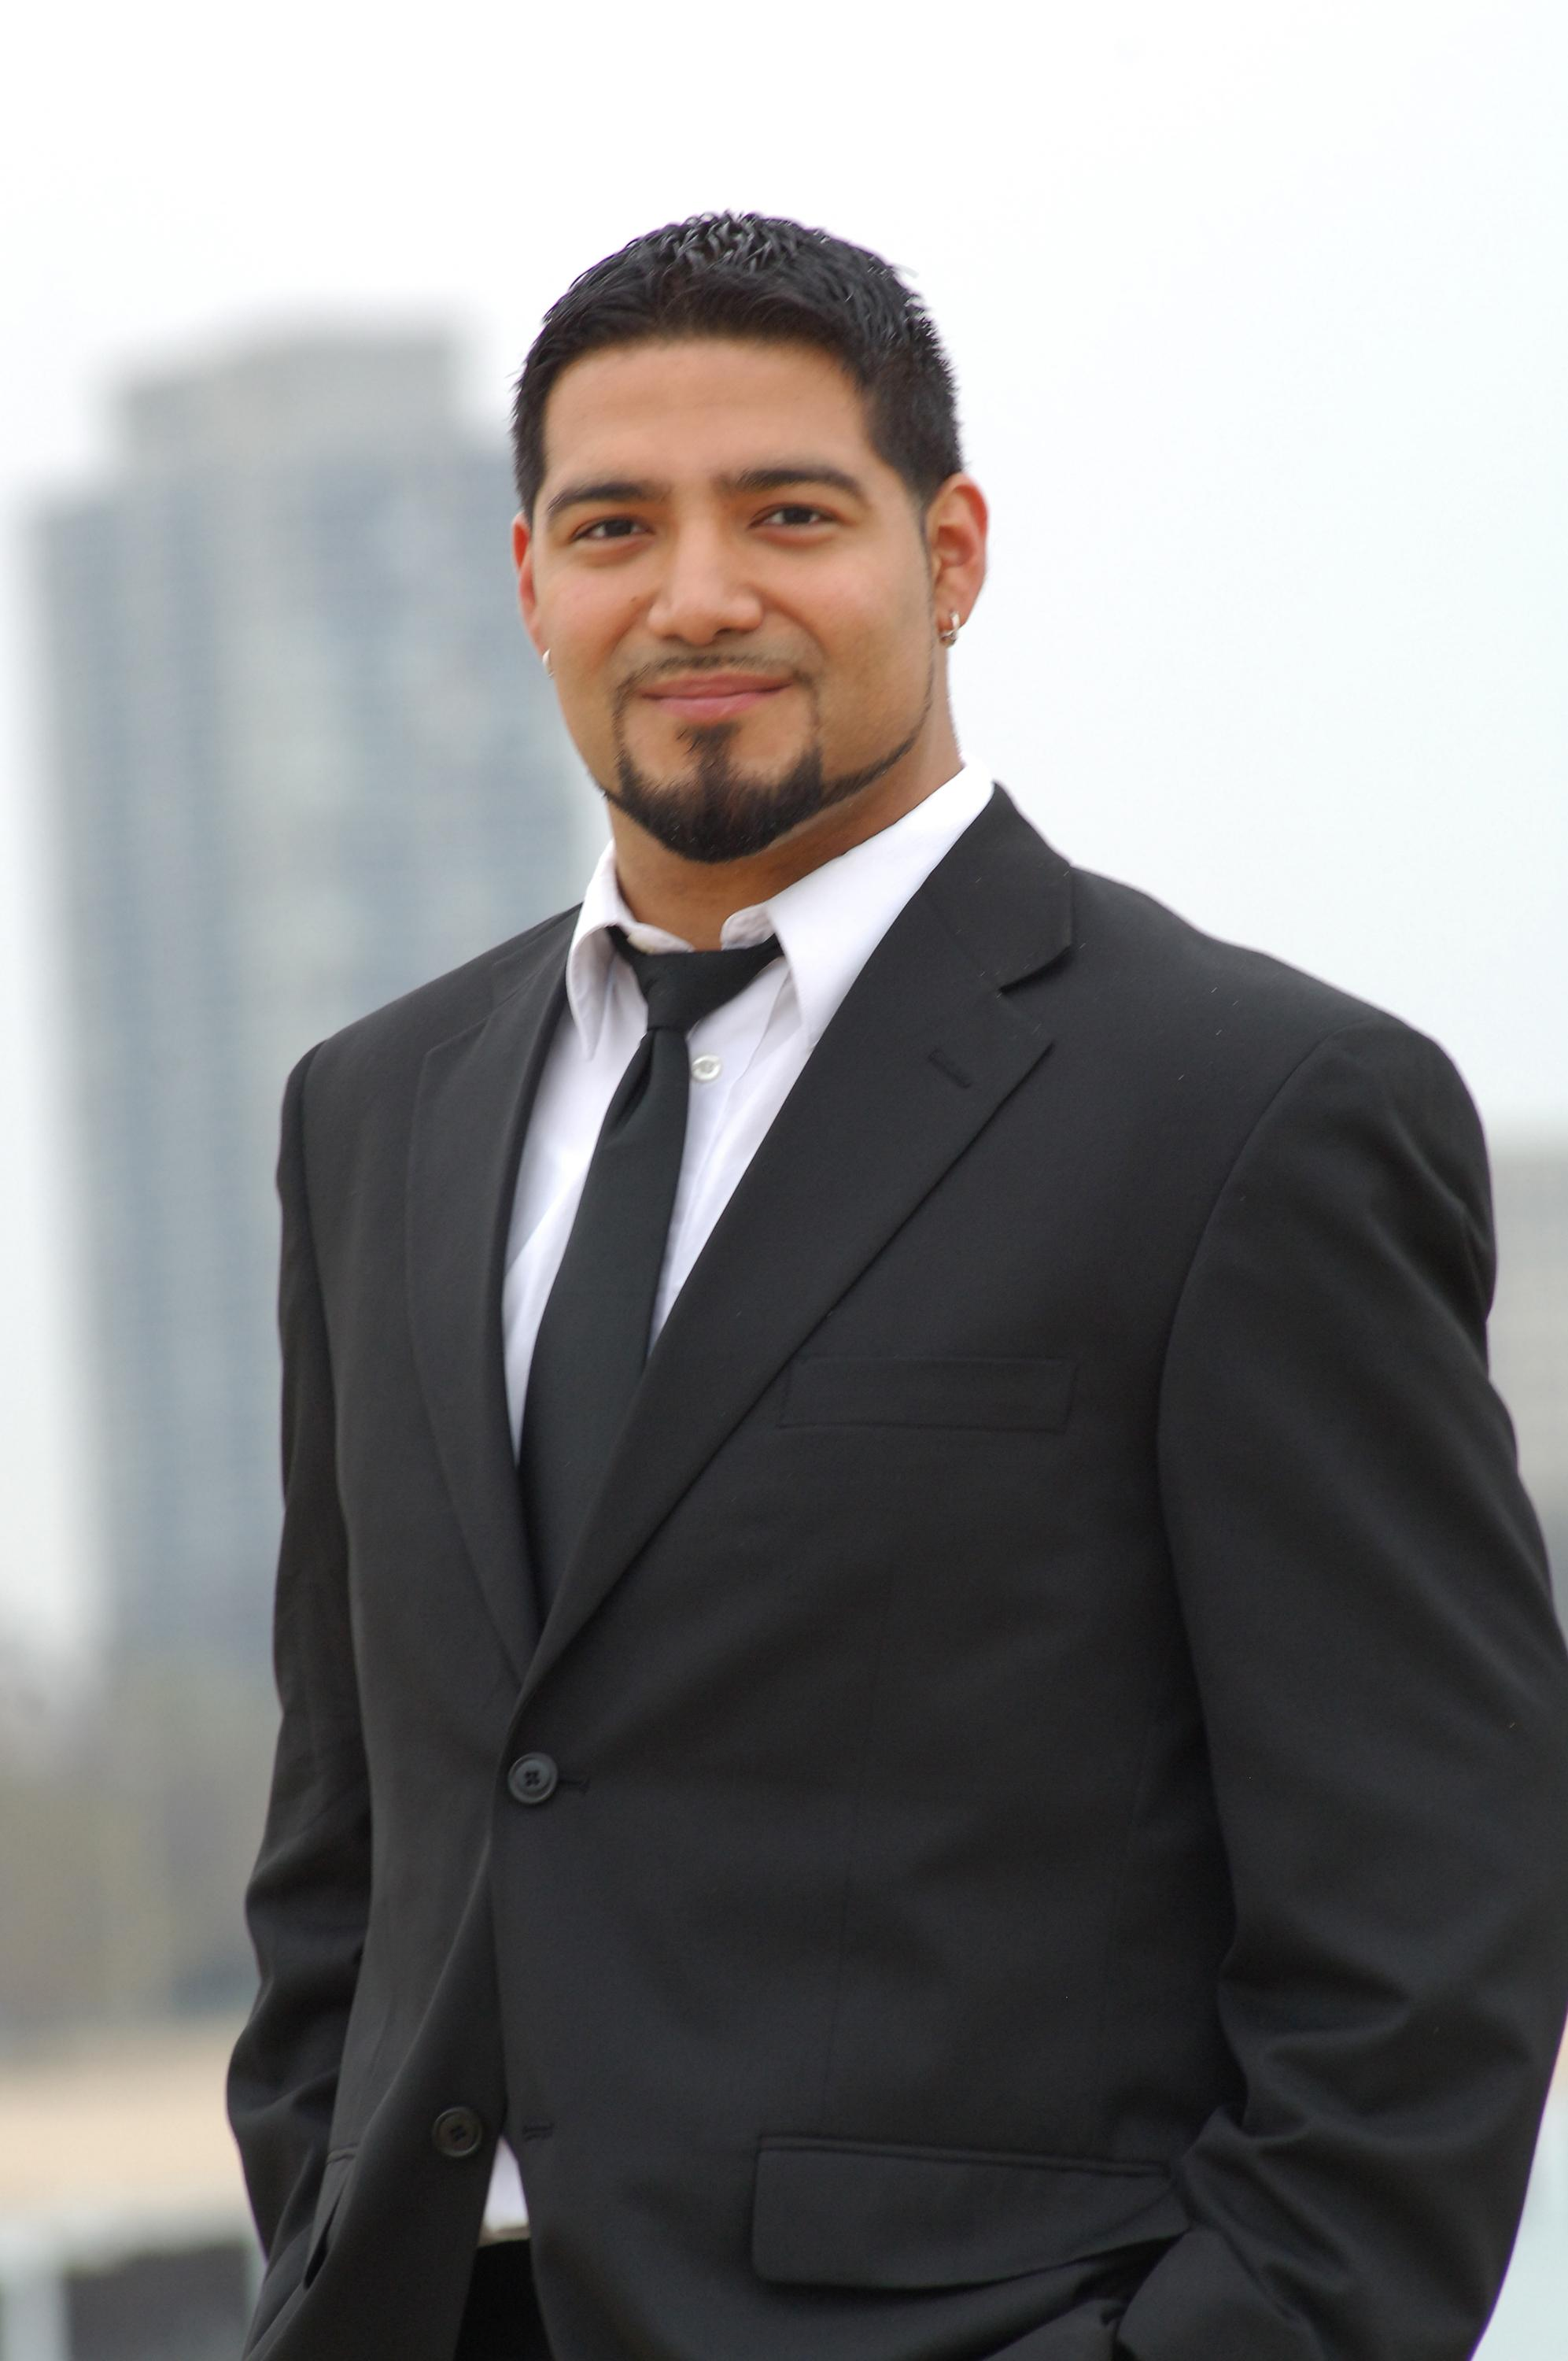 A portrait of a tan-skinned man with short dark hair and a groomed goatee in a black suit and tie, stands outside with skyscrapers blurred in the distance.